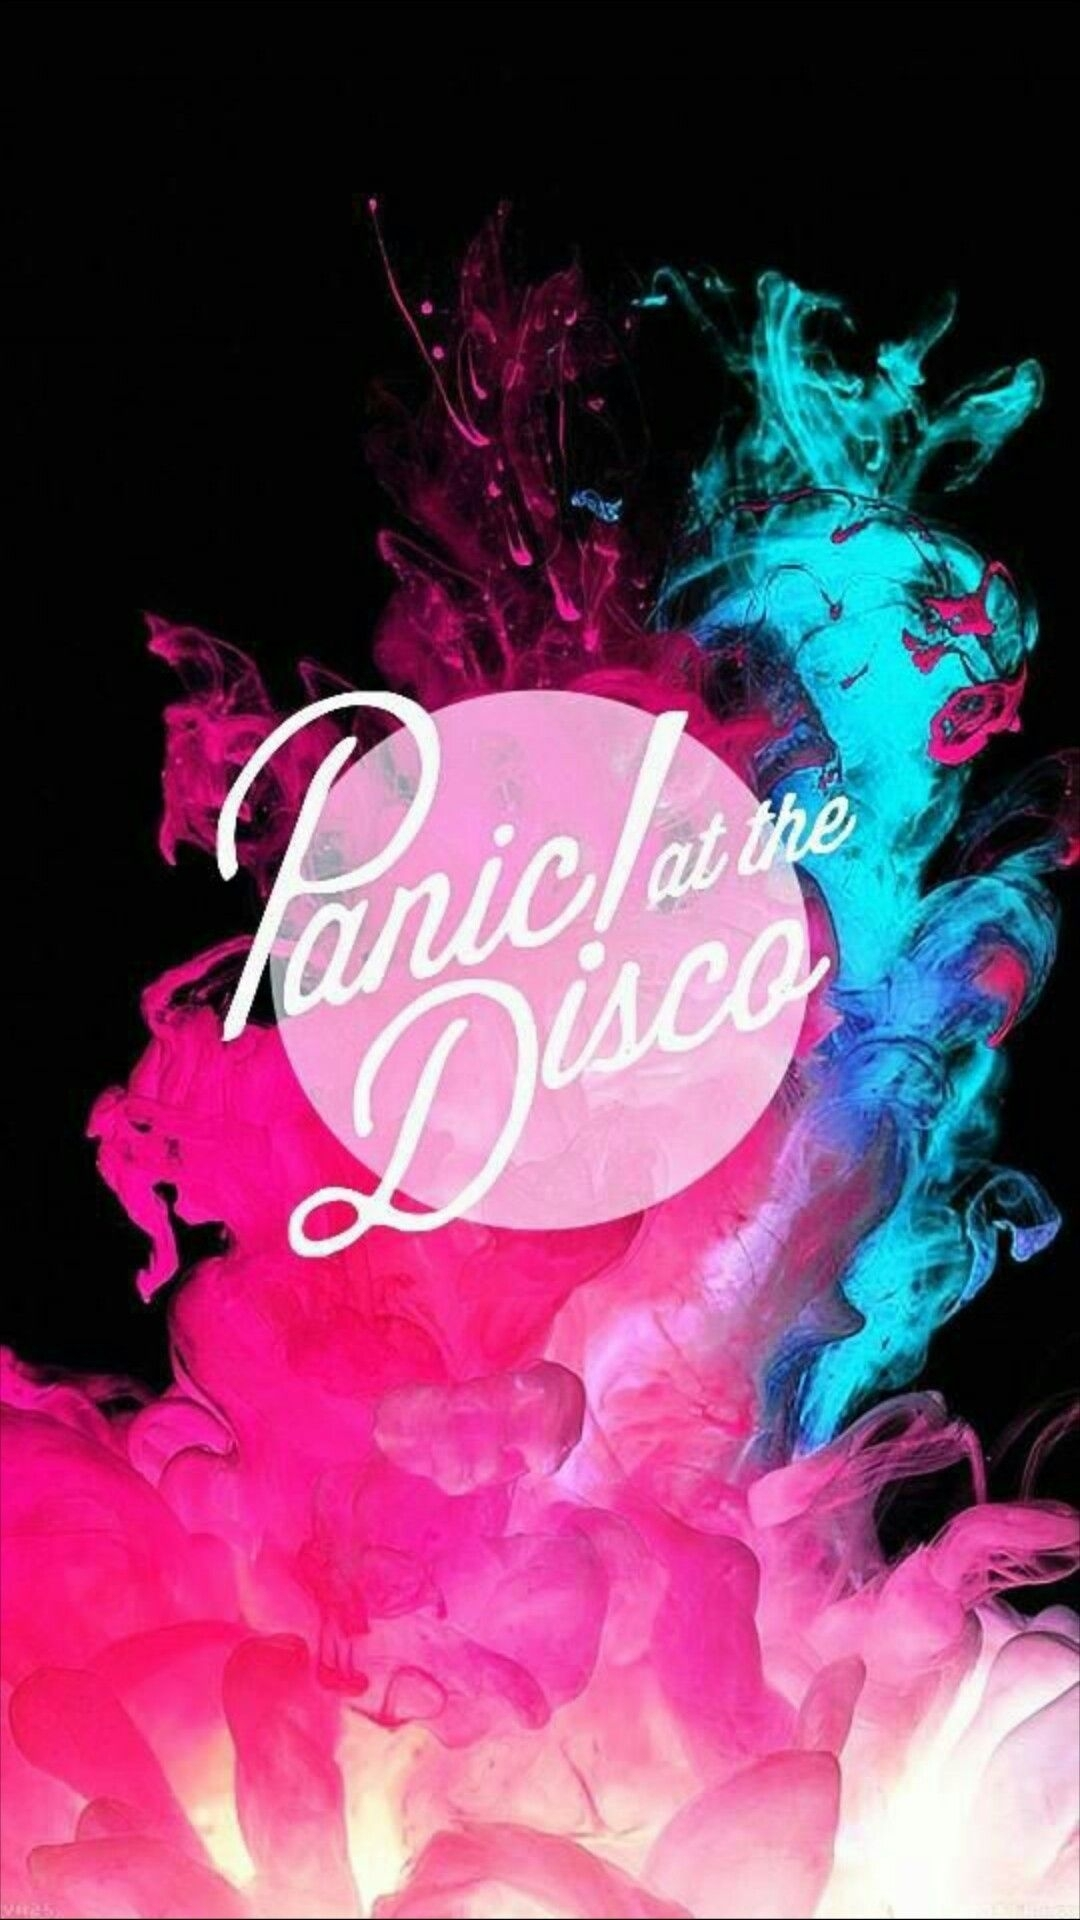 panic at the disco wallpaper 1080x1920 for iphone 5s   p!atd